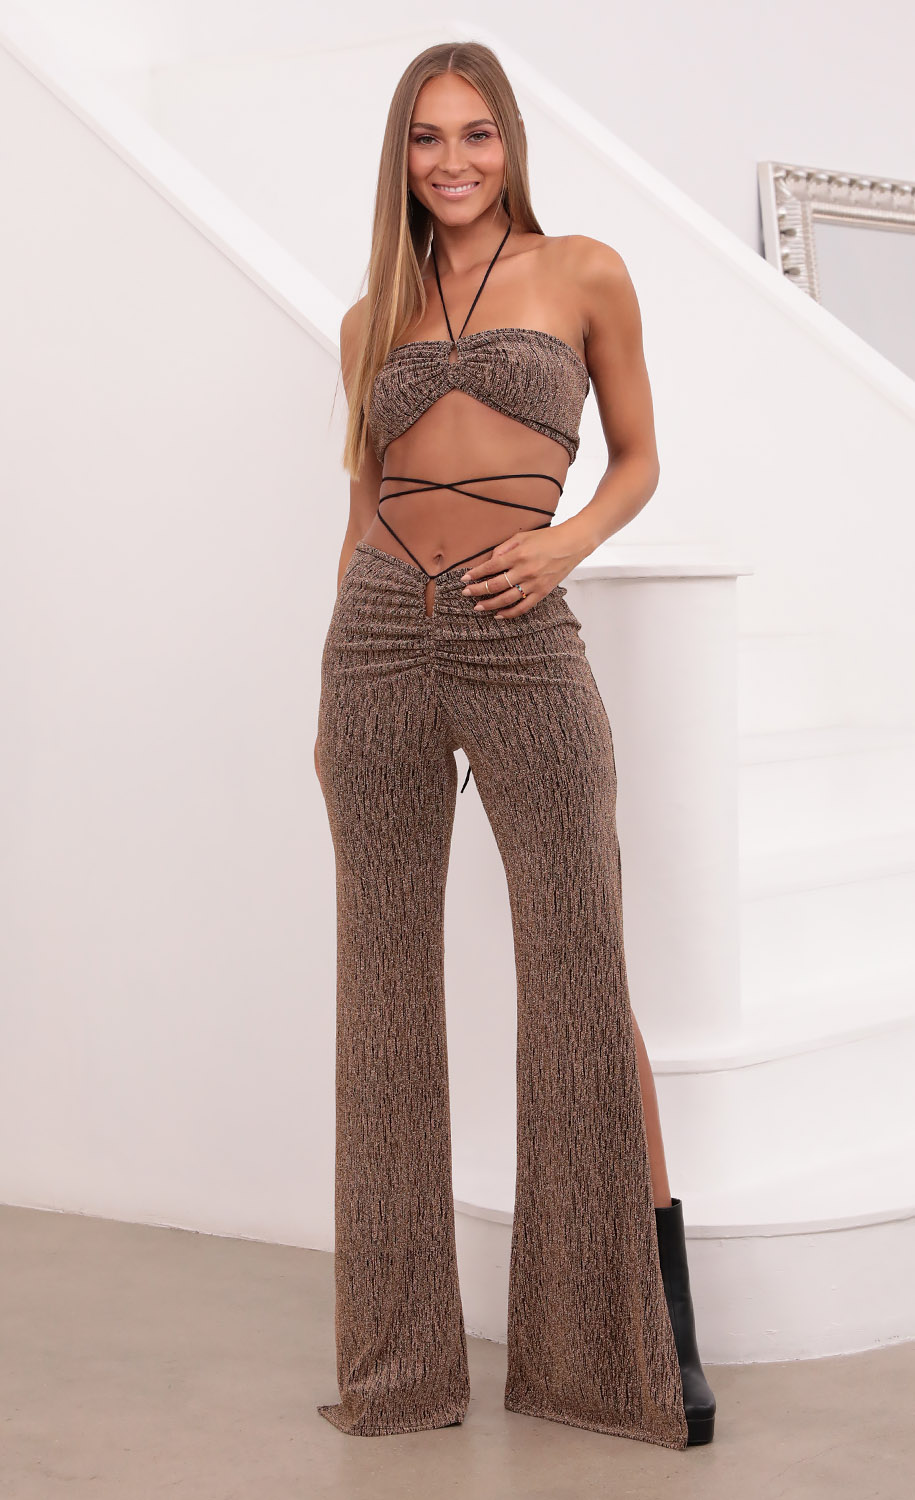 Dylan Suede Pant Set in Gold